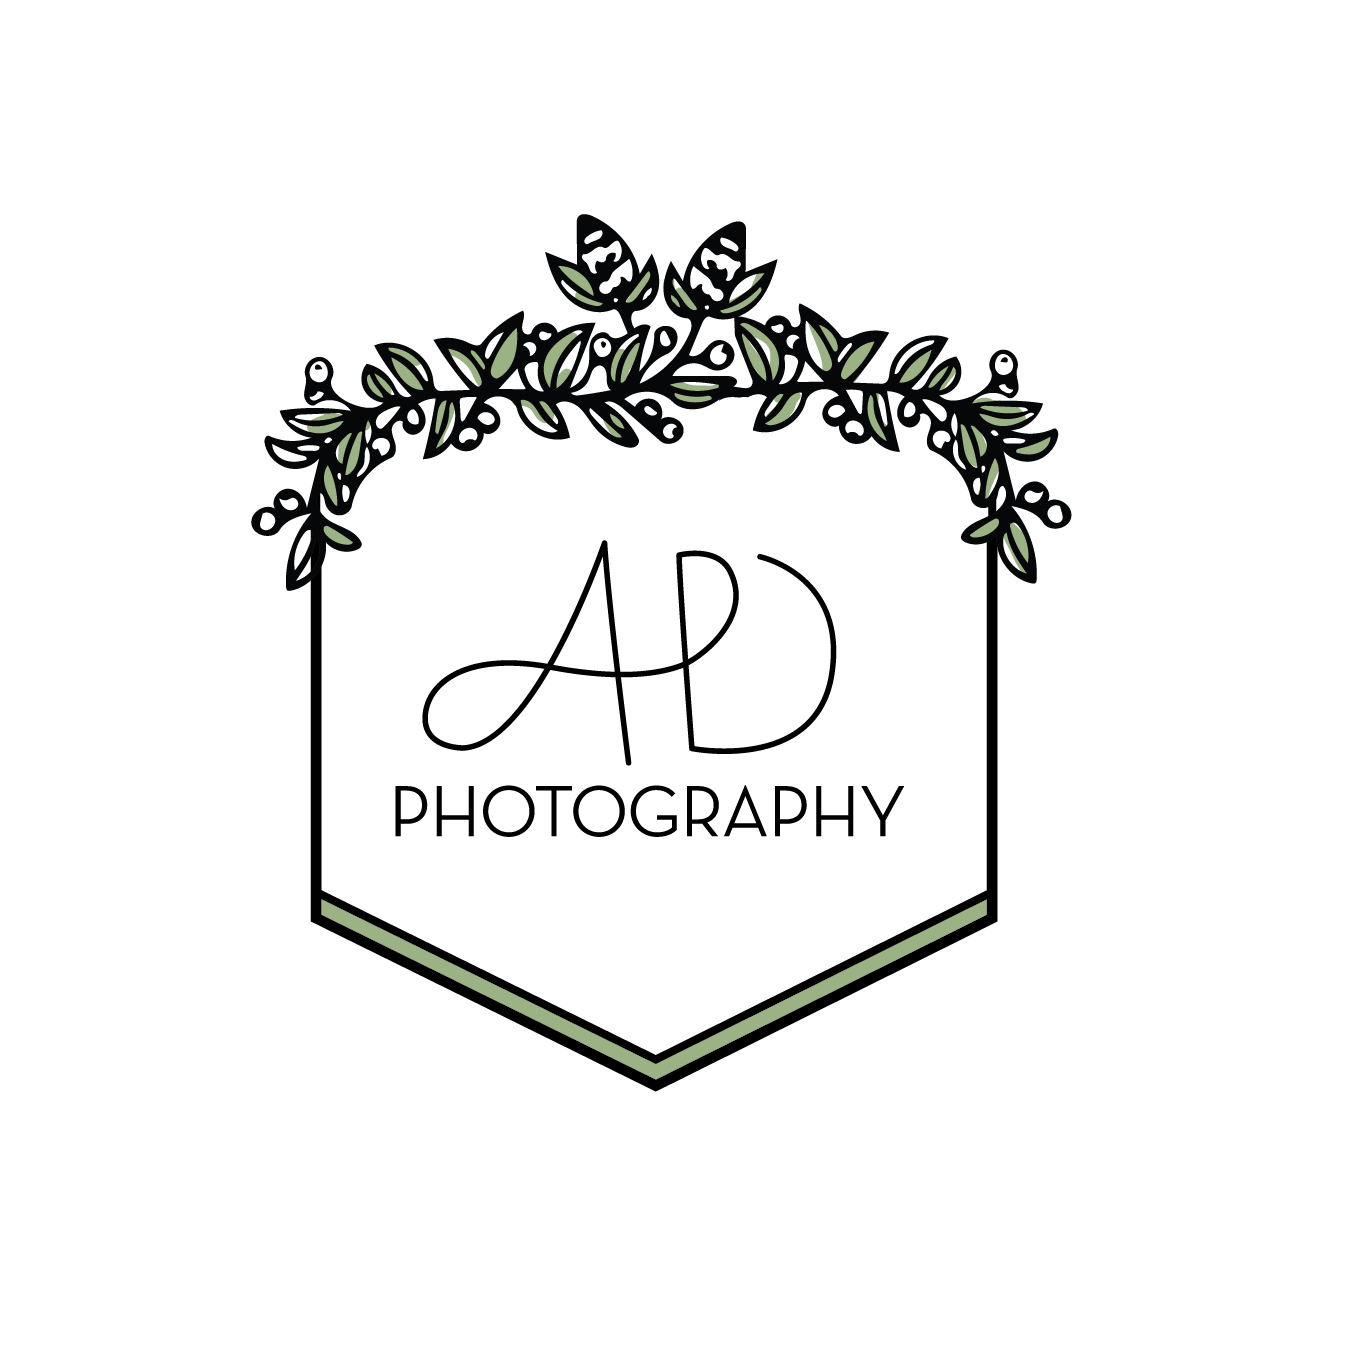 Alanna Danae Photography